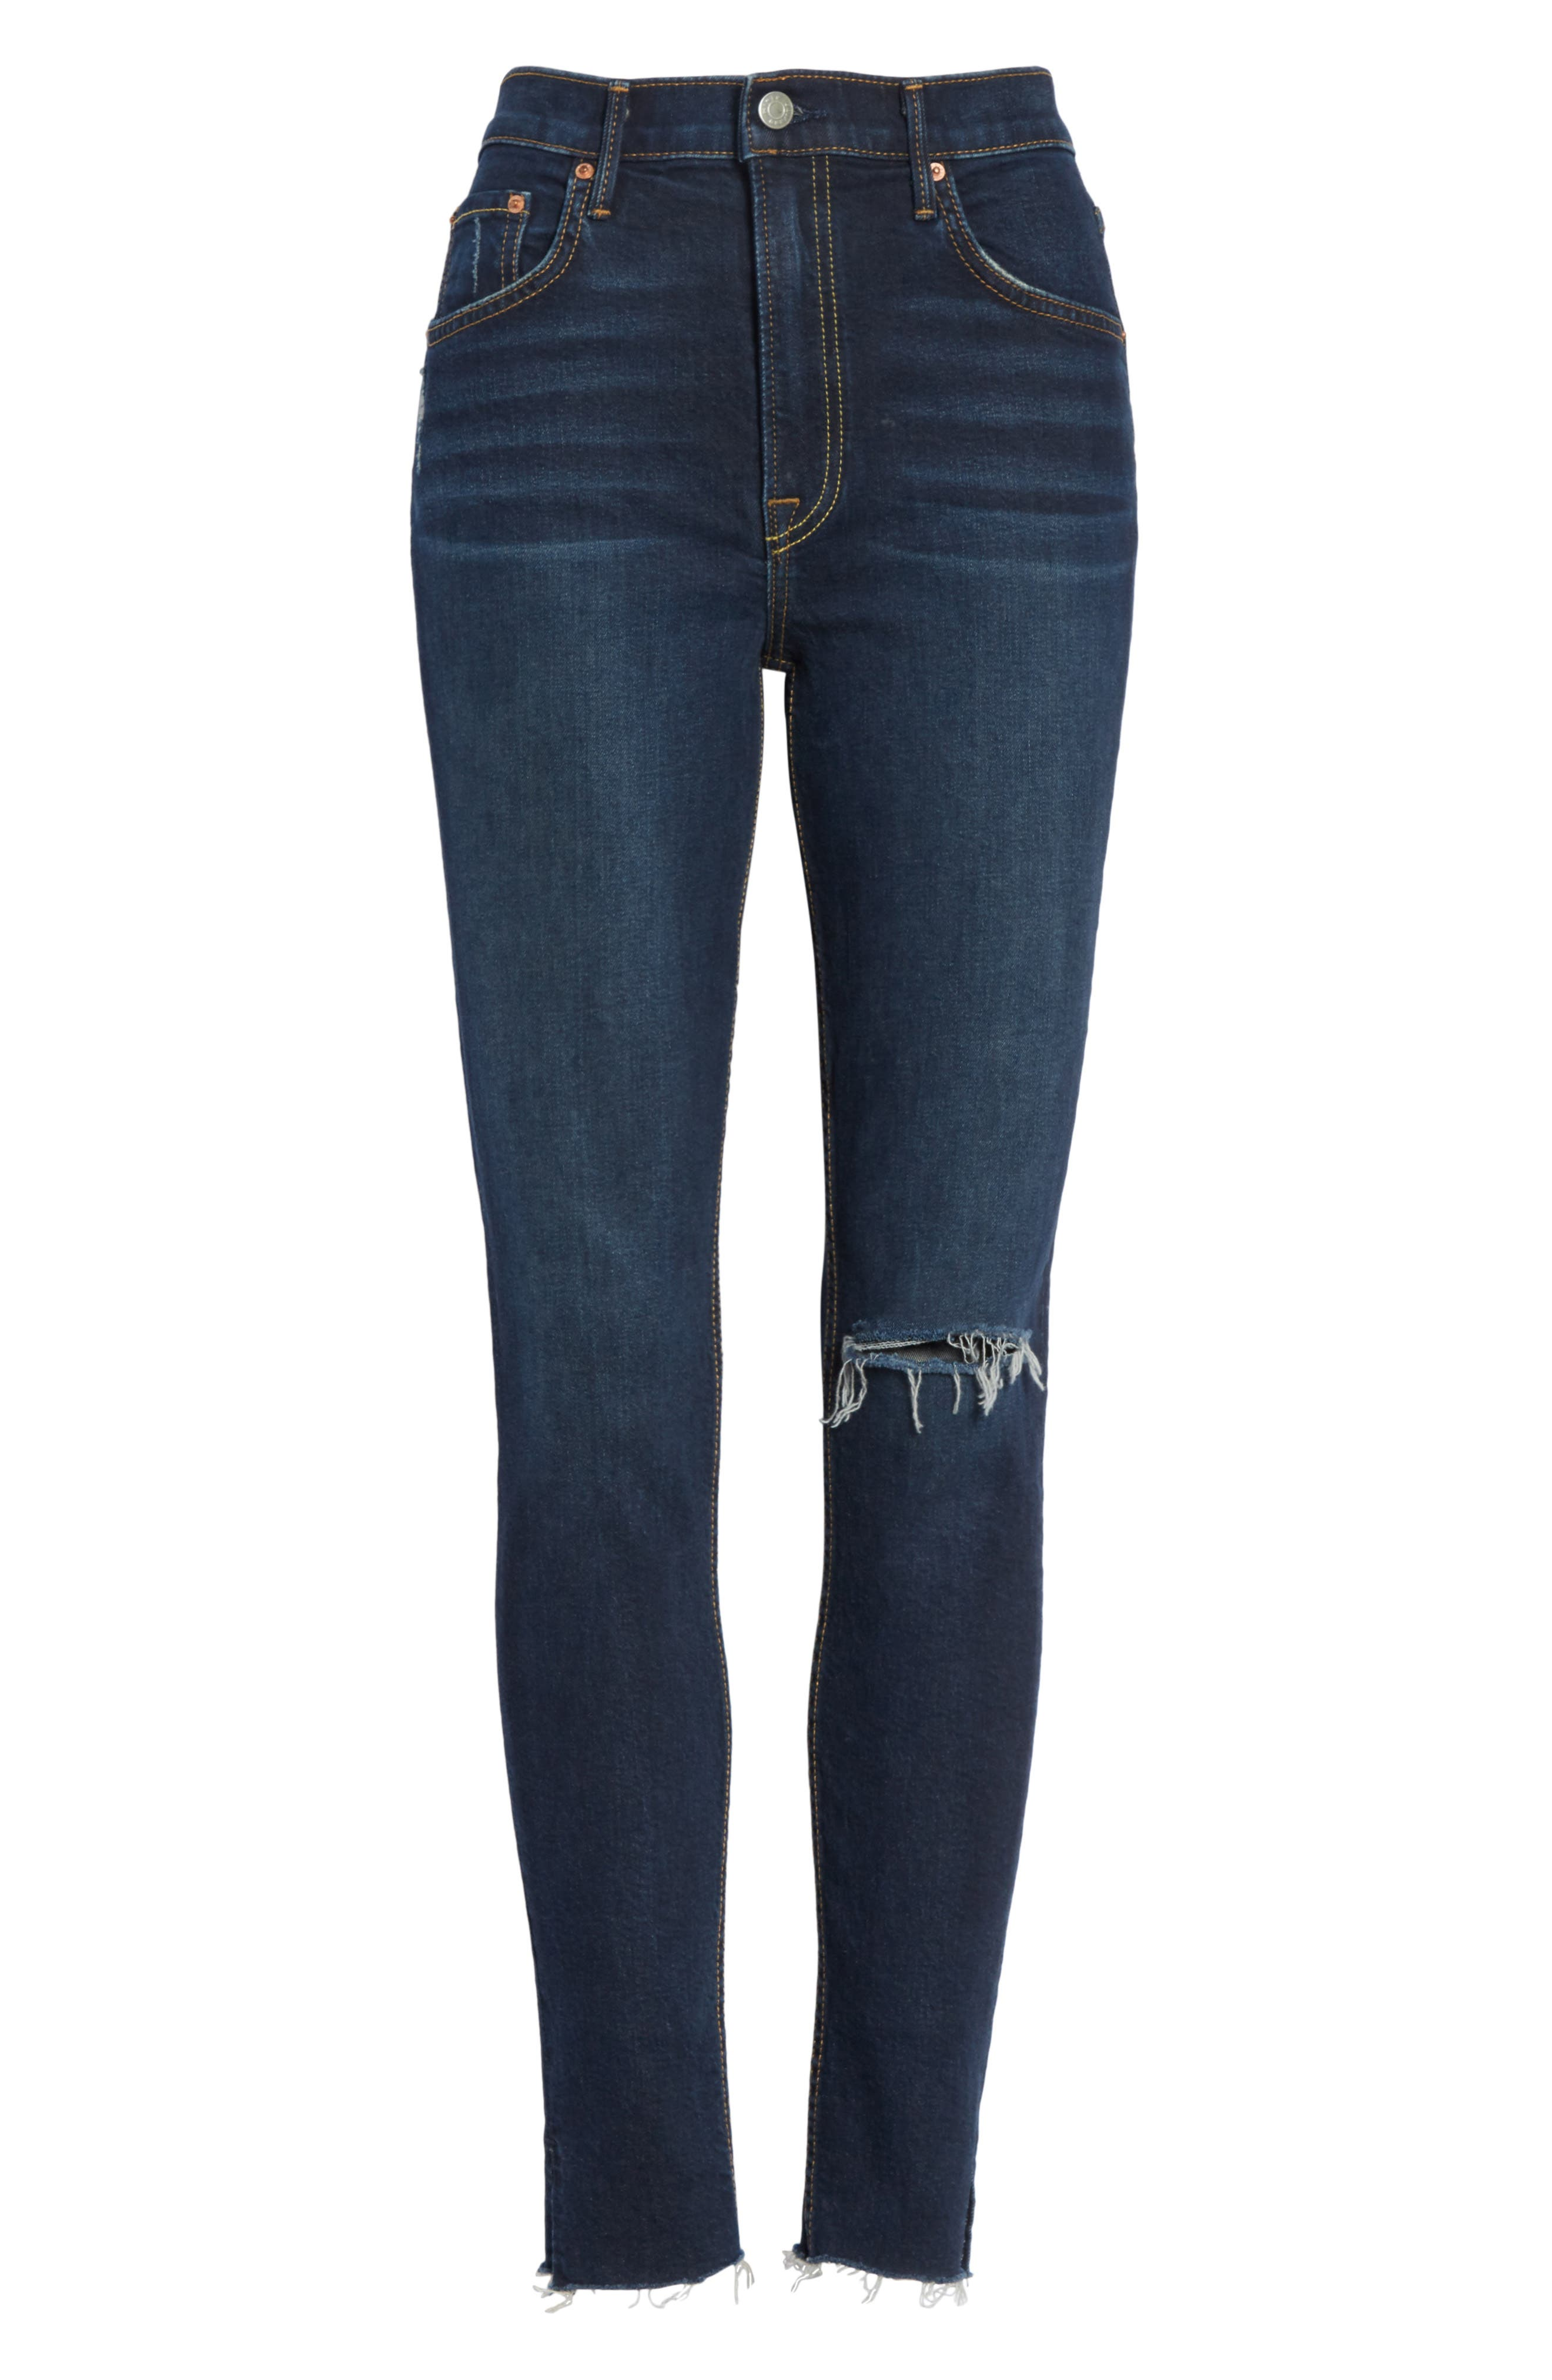 Kendall Super Stretch High Waist Skinny Jeans,                             Alternate thumbnail 6, color,                             478